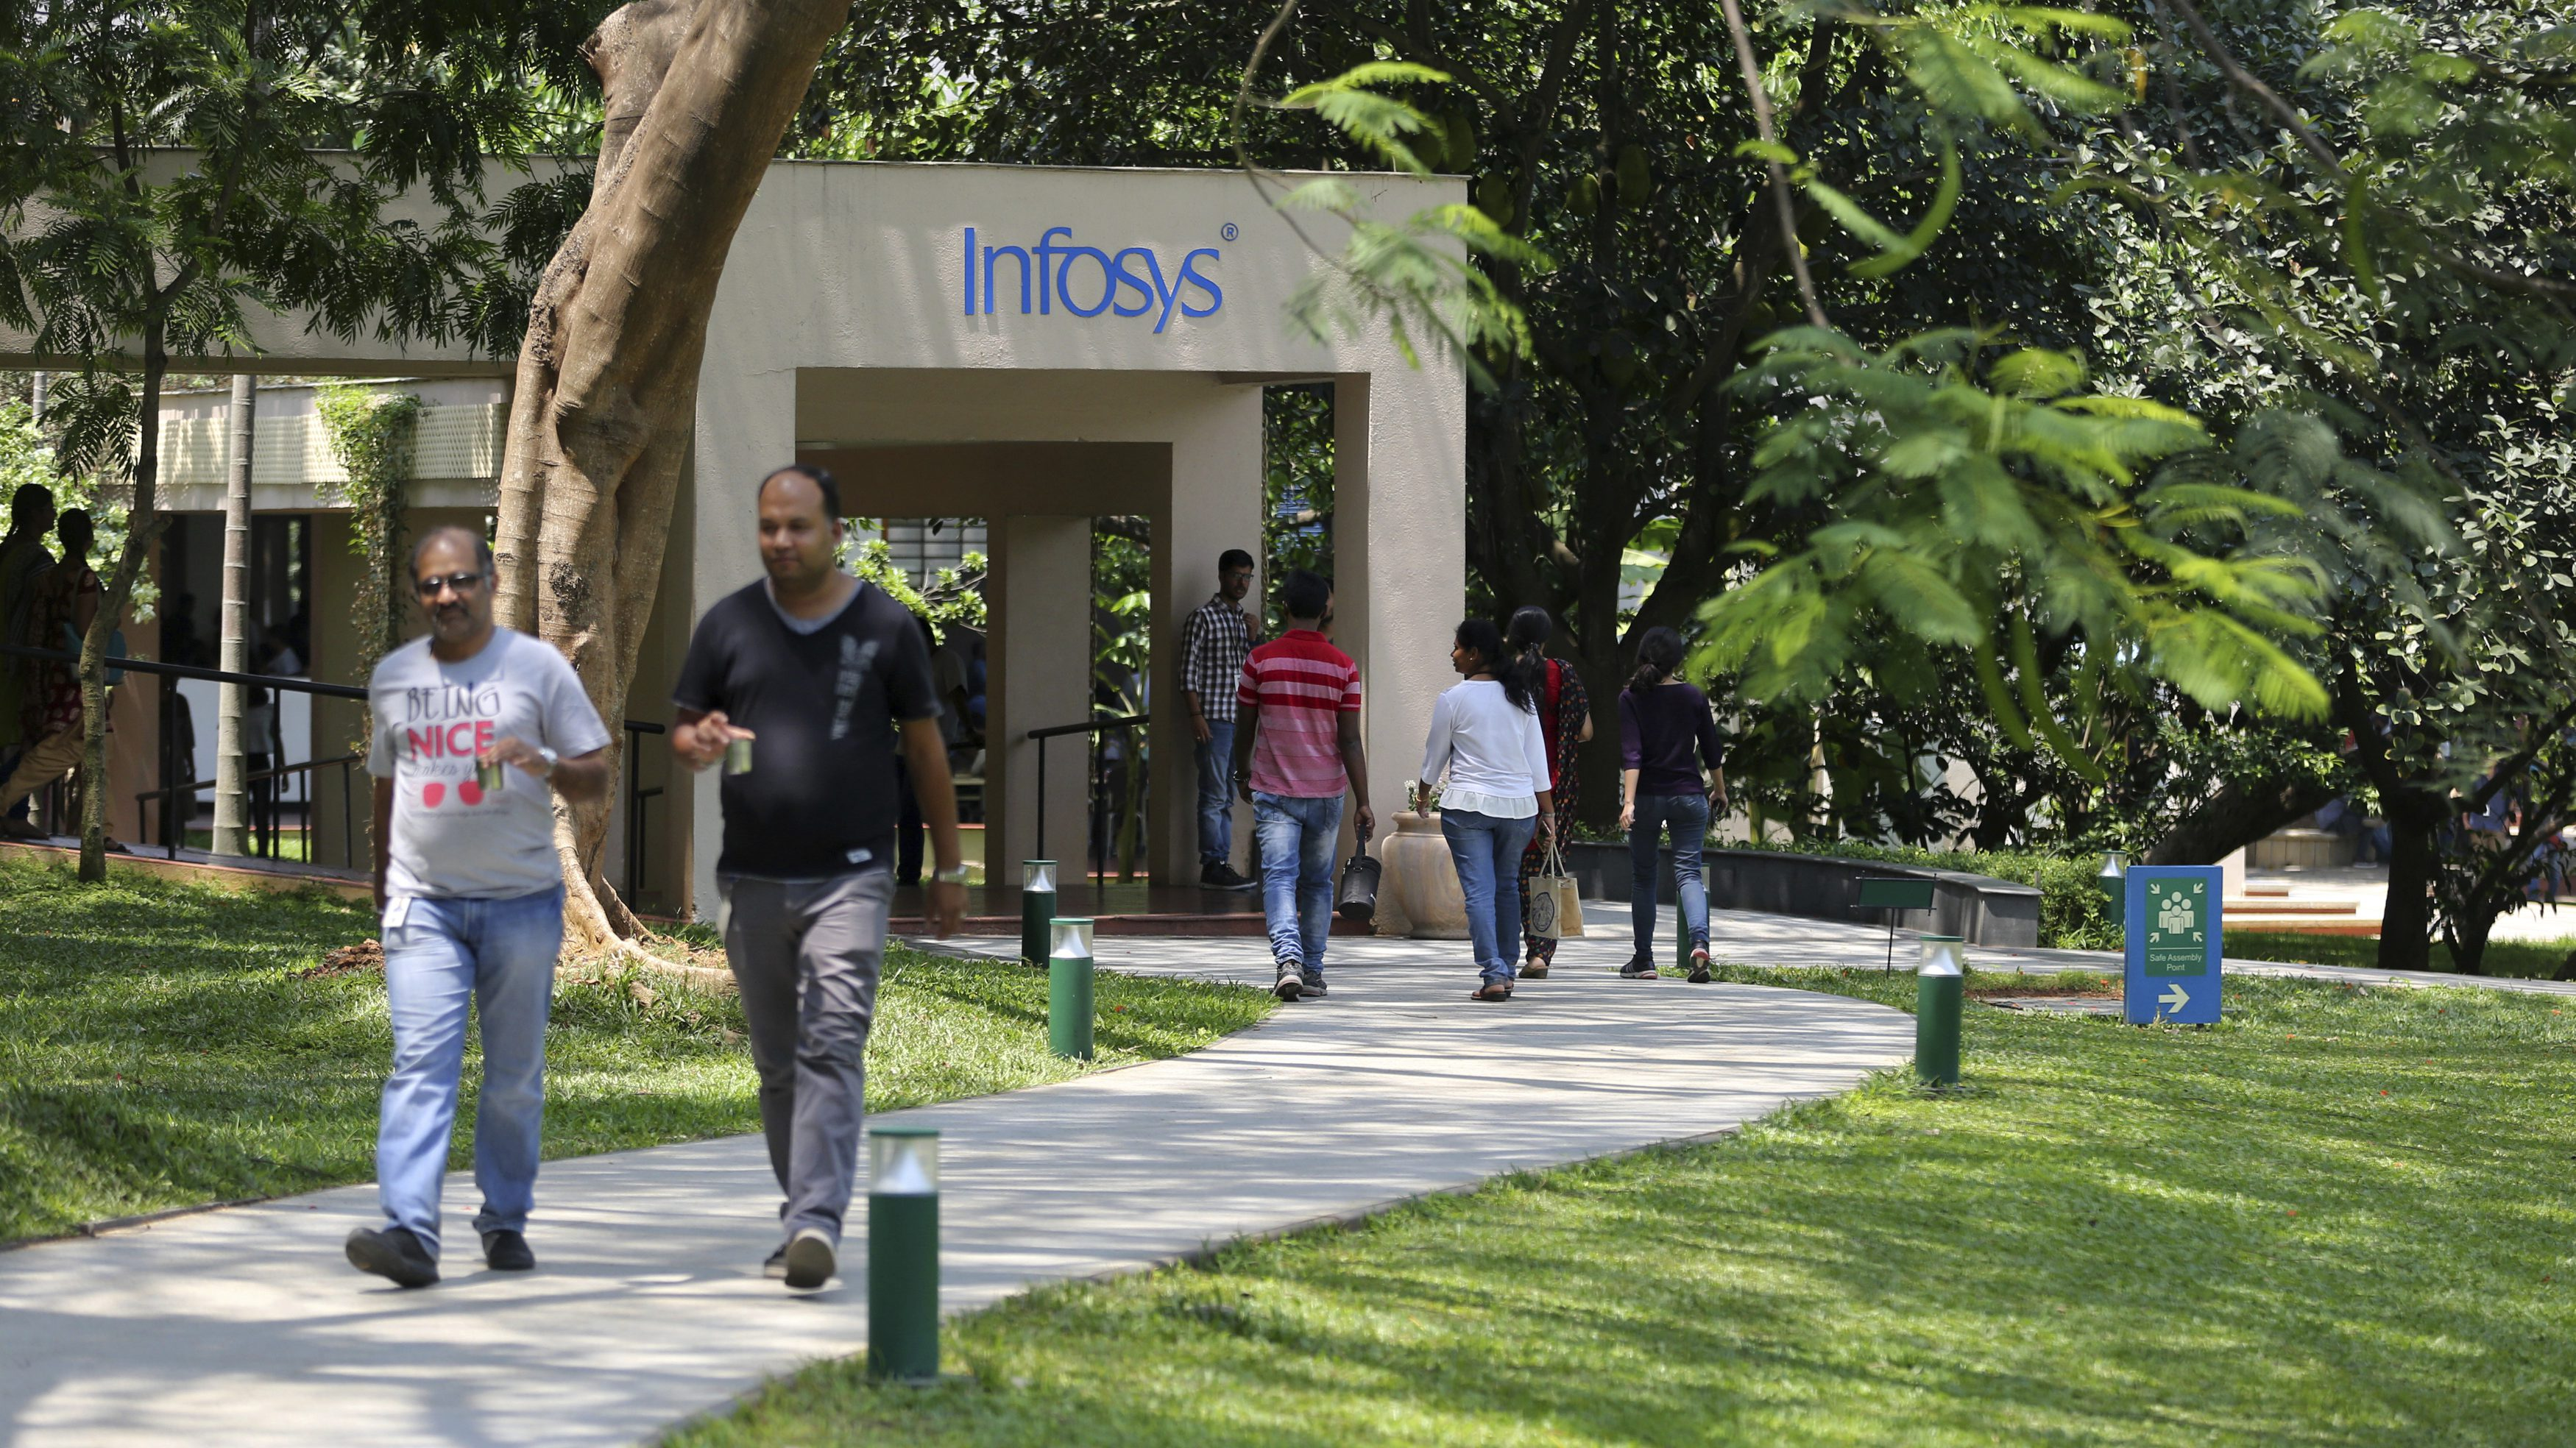 Infosys employees walk inside the company headquarters during a break after their annual financial results were announced in Bangalore, India, Thursday, April 13, 2017. (AP Photo/Aijaz Rahi)